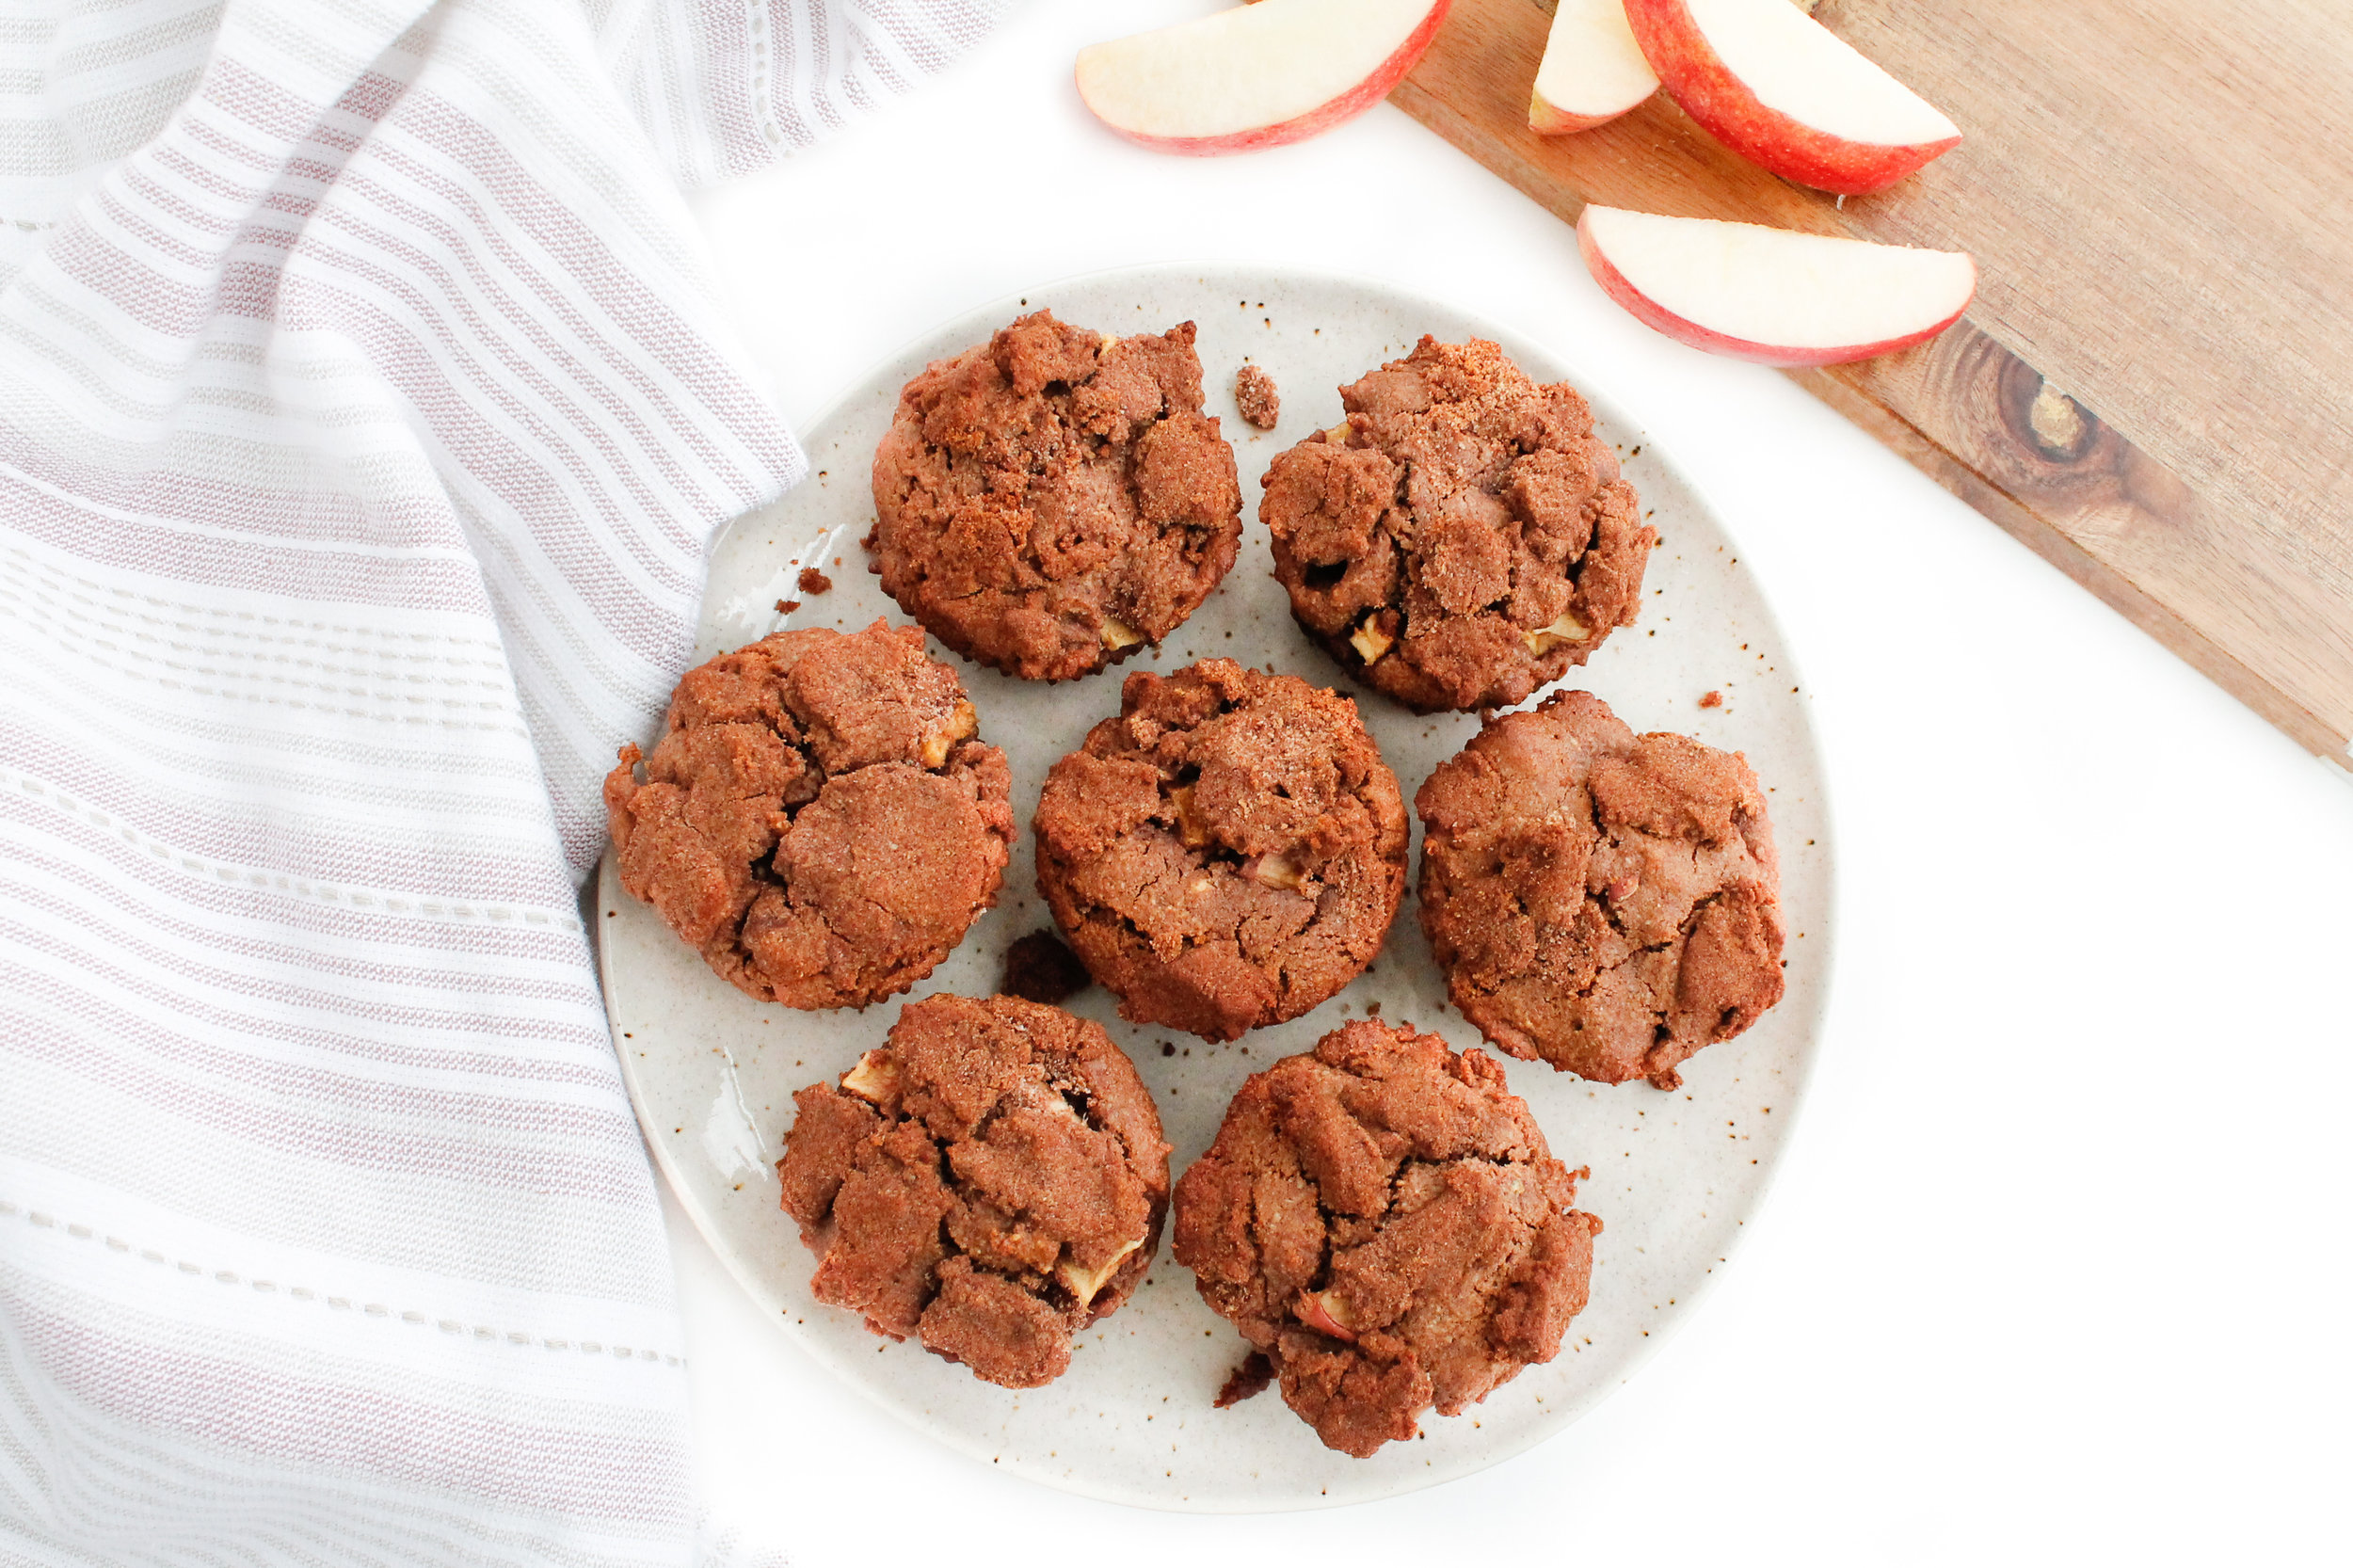 Paleo Cinnamon Apple Muffins    These cinnamon apple muffins are grain free, gluten free, dairy free, refined sugar free AND Specific Carbohydrate Diet friendly! They are the perfect combo of sweet and spicy from the apples and cinnamon and are perfect paired with coffee or tea for a healthy snack, healthy breakfast or healthy sweet treat. Click through for the full recipe!    plentyandwell.com    #paleobaking #paleomuffins #specificcarbohydratediet